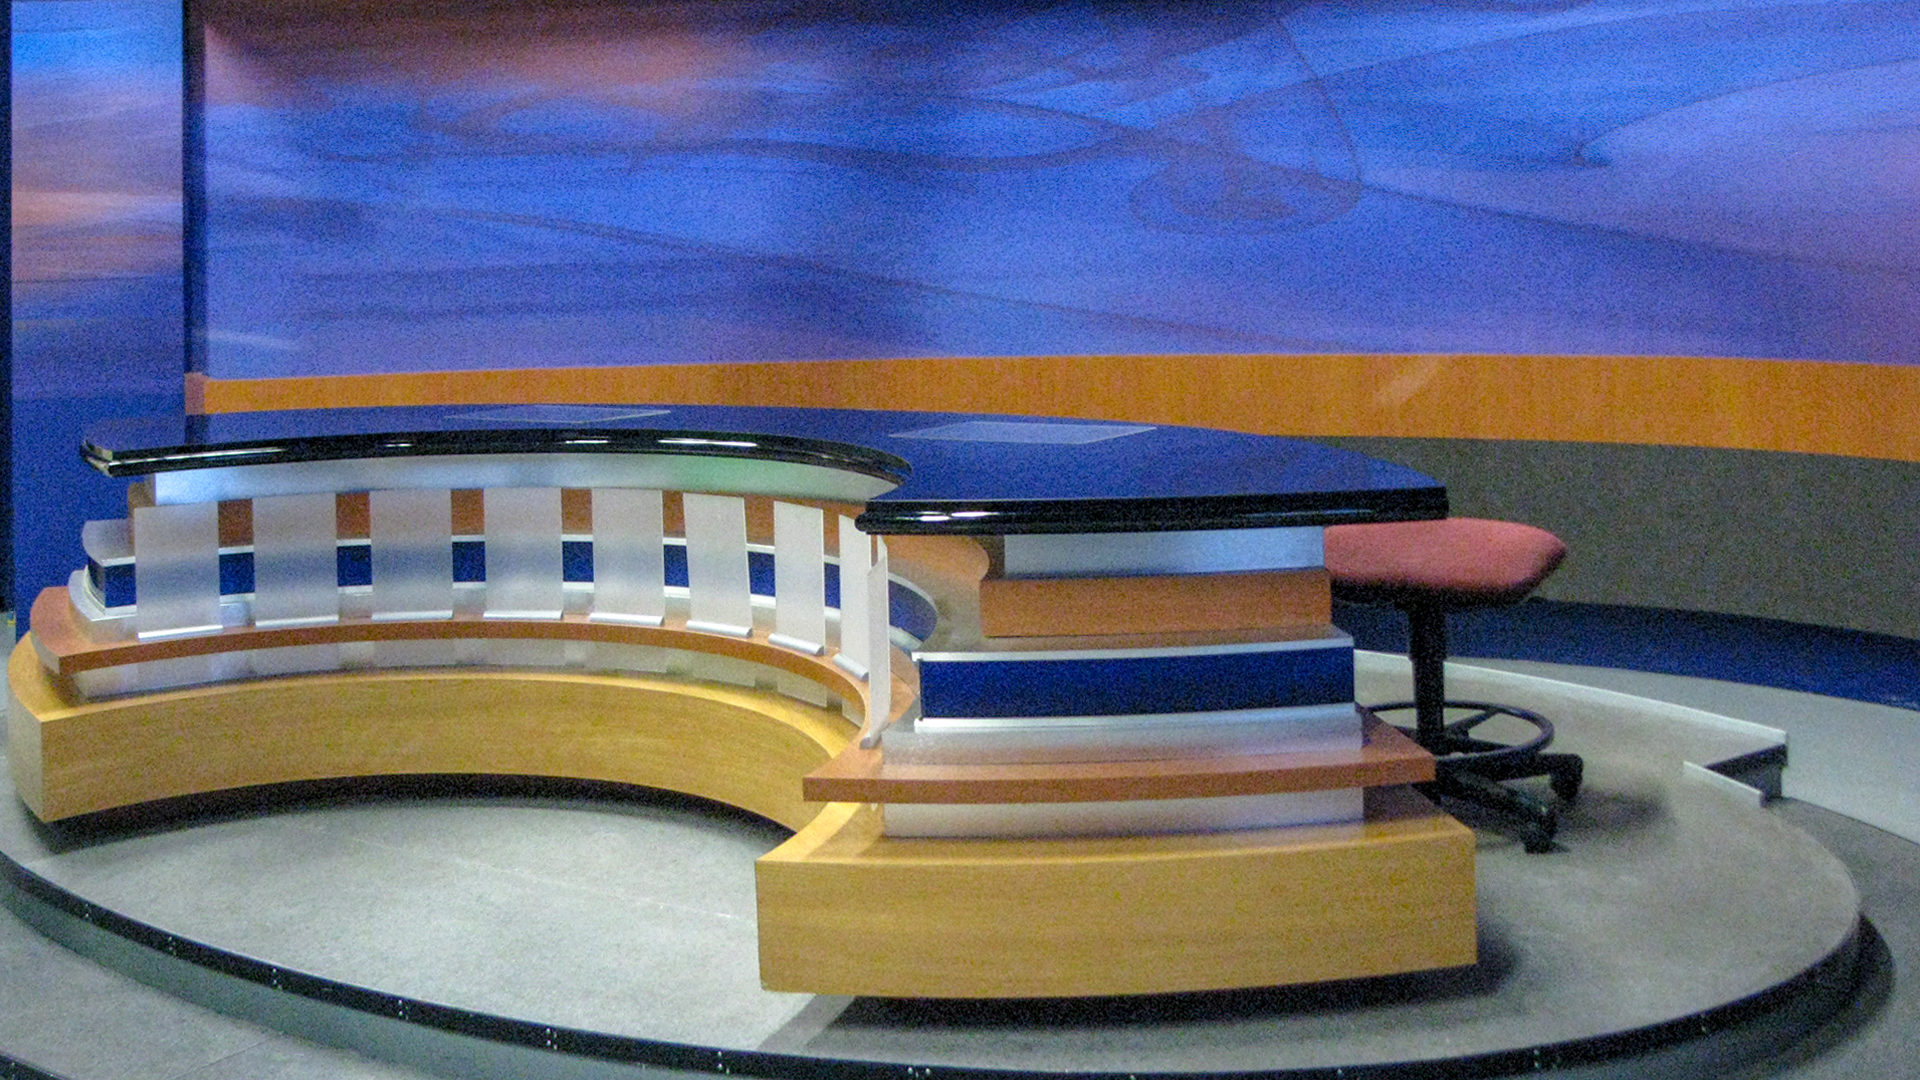 KAAL TV Studio Rochester ABC 6 News News Anchor Desk